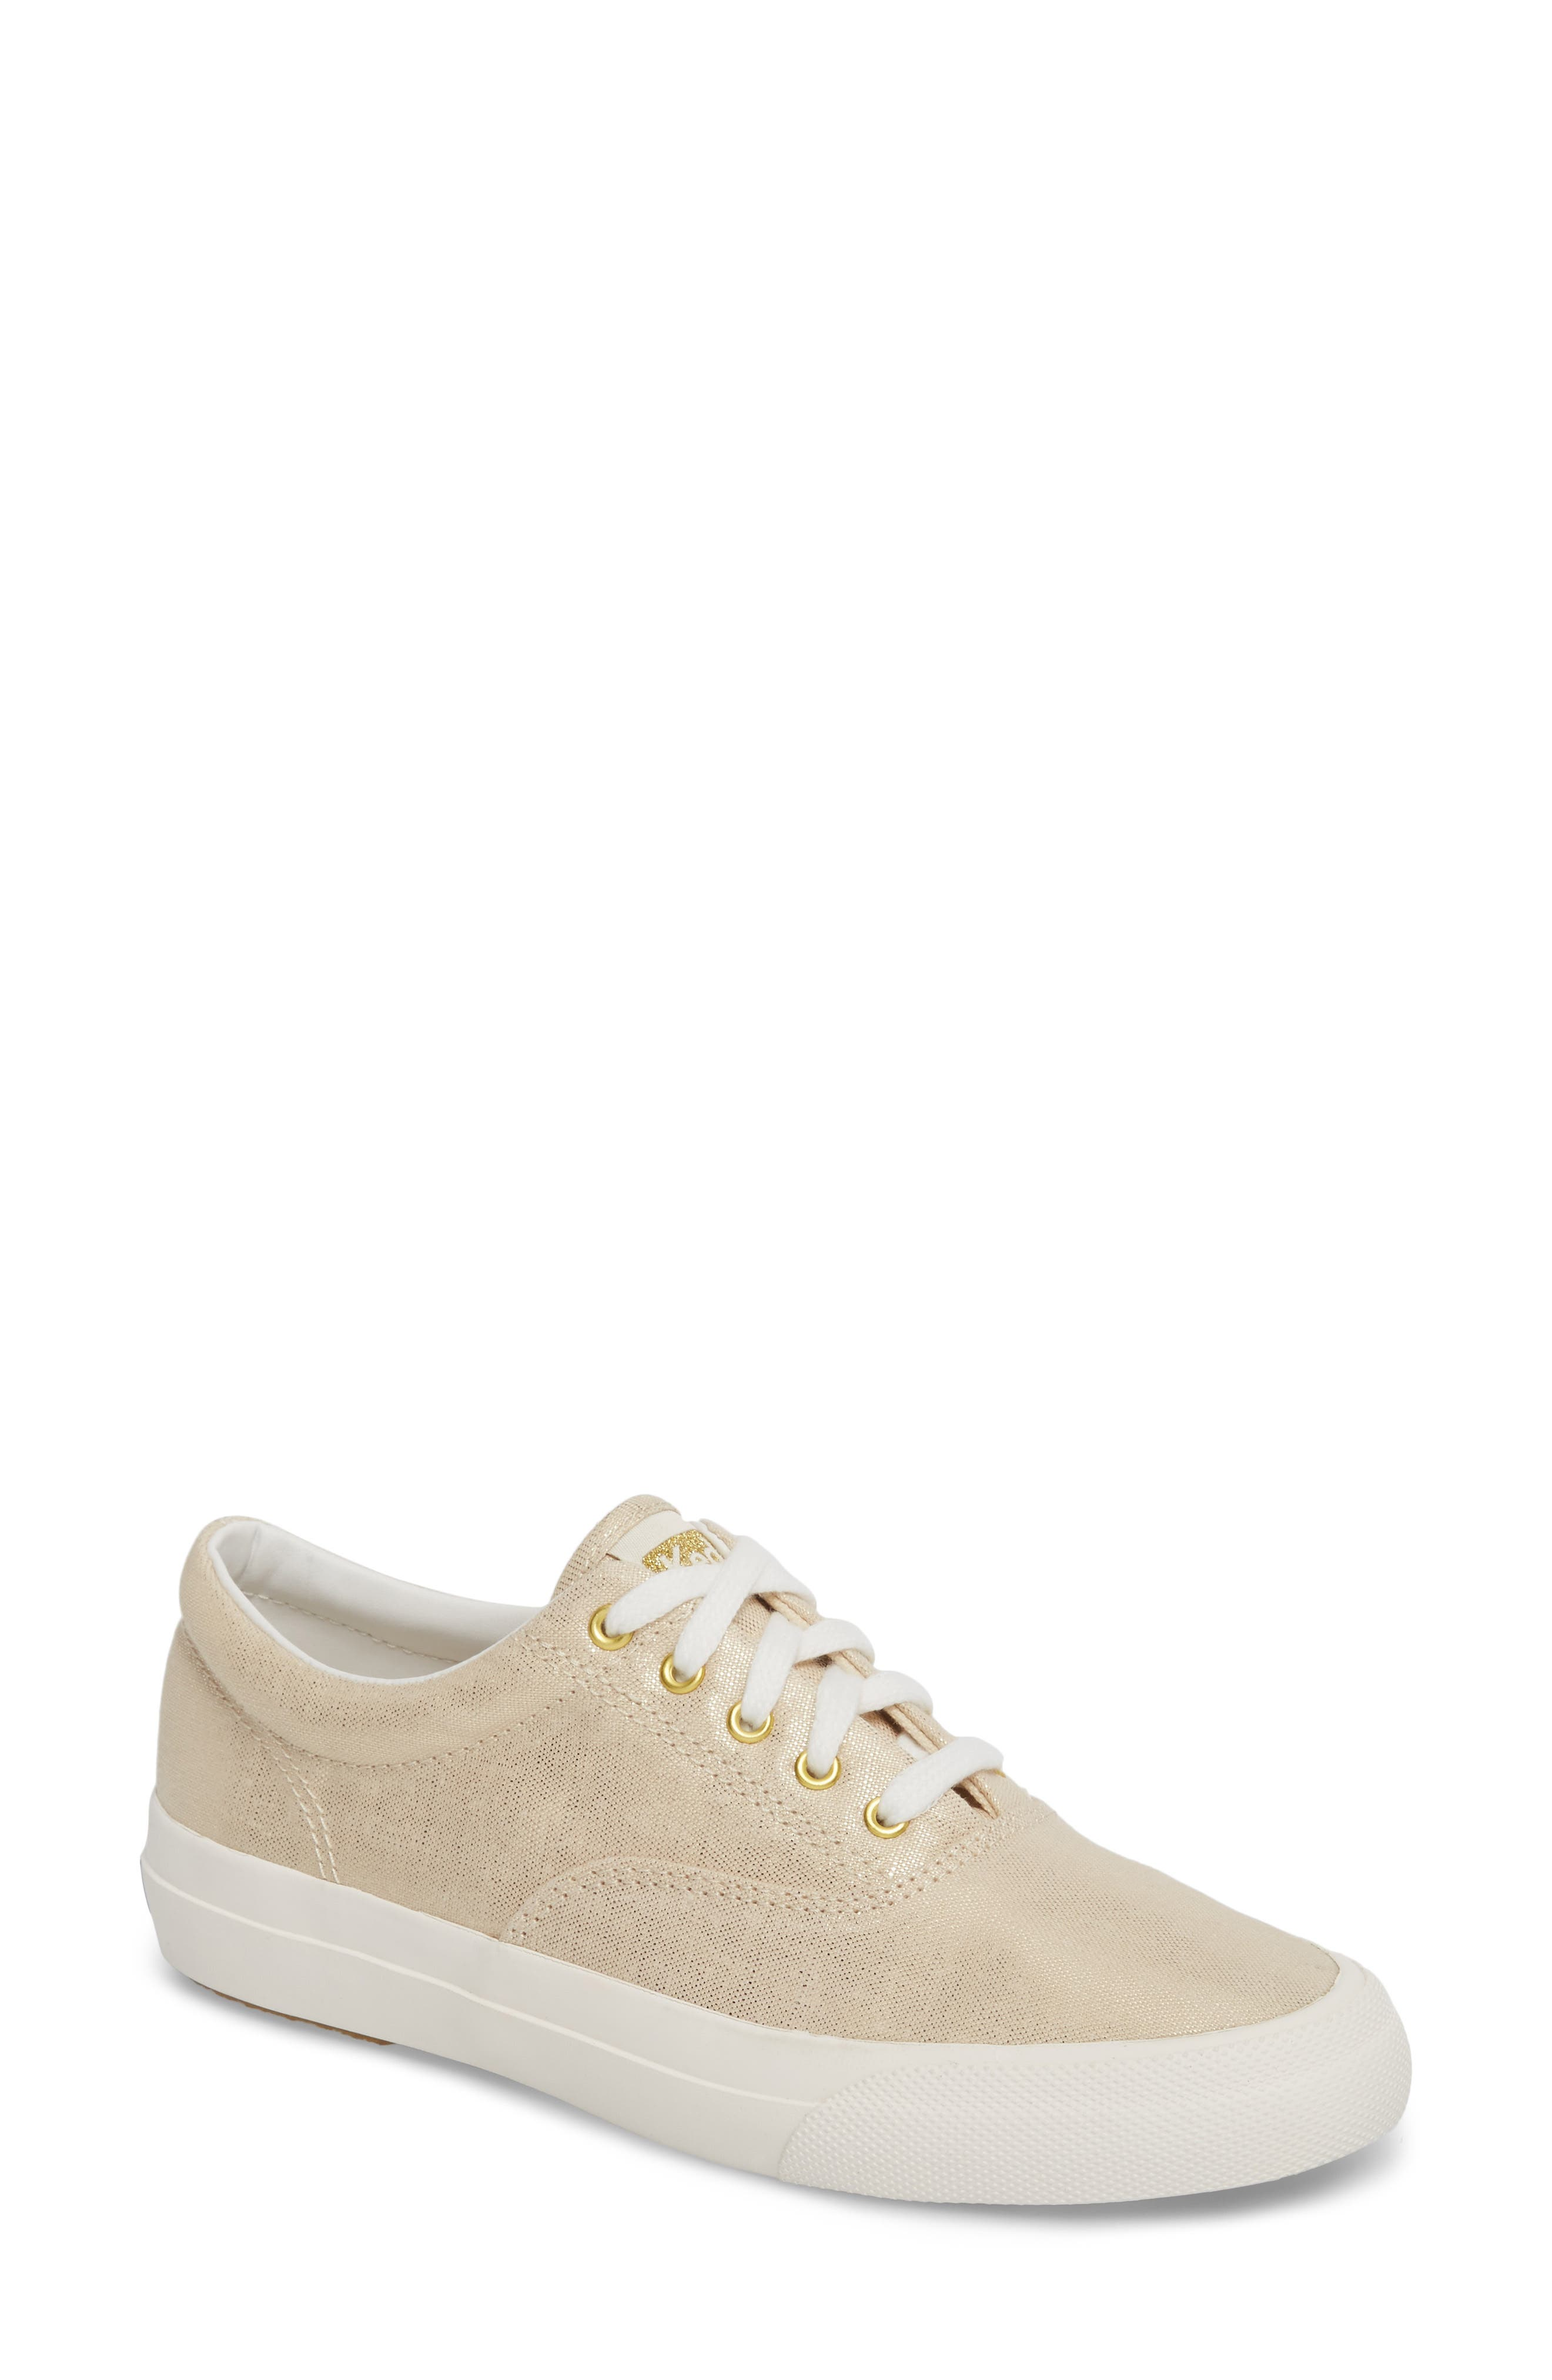 Anchor Metallic Linen Sneaker,                         Main,                         color, 710